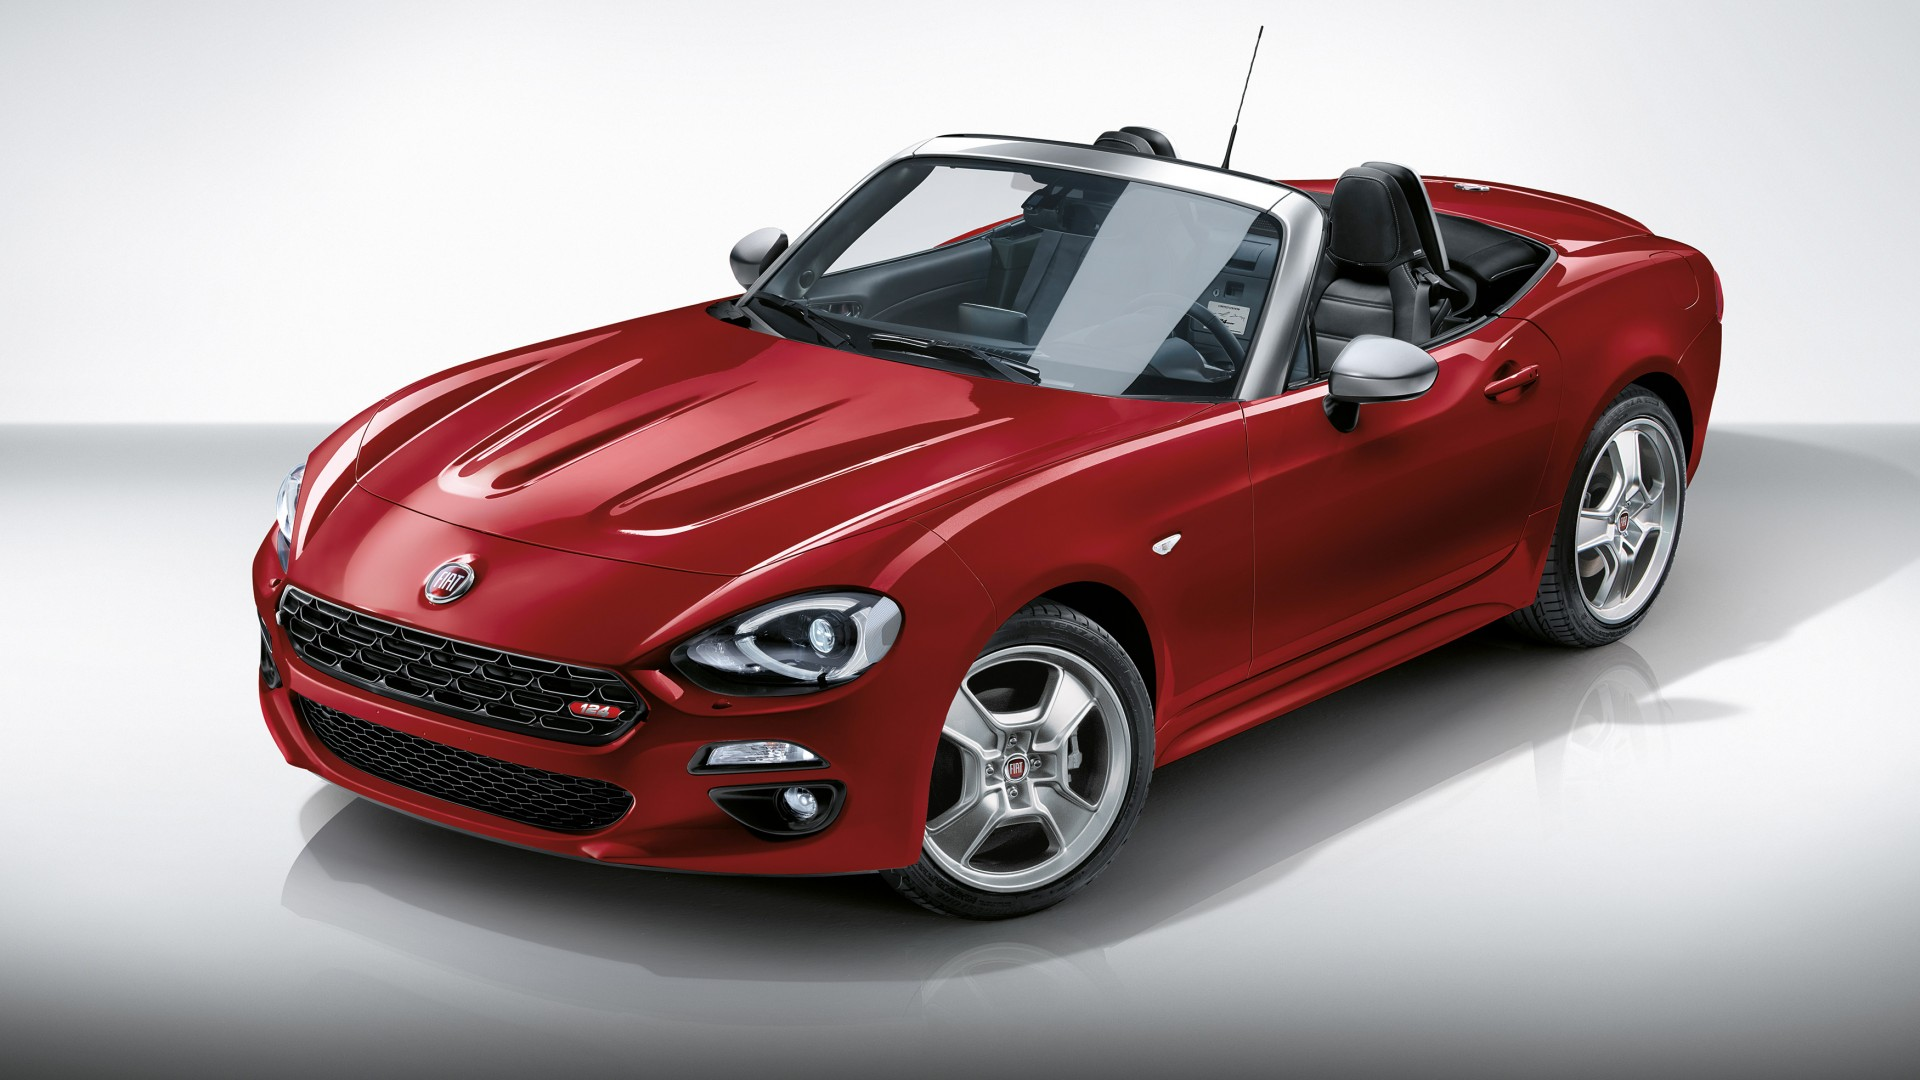 2017 fiat 124 spider europa wallpaper hd car wallpapers for Fiat 124 spider motor